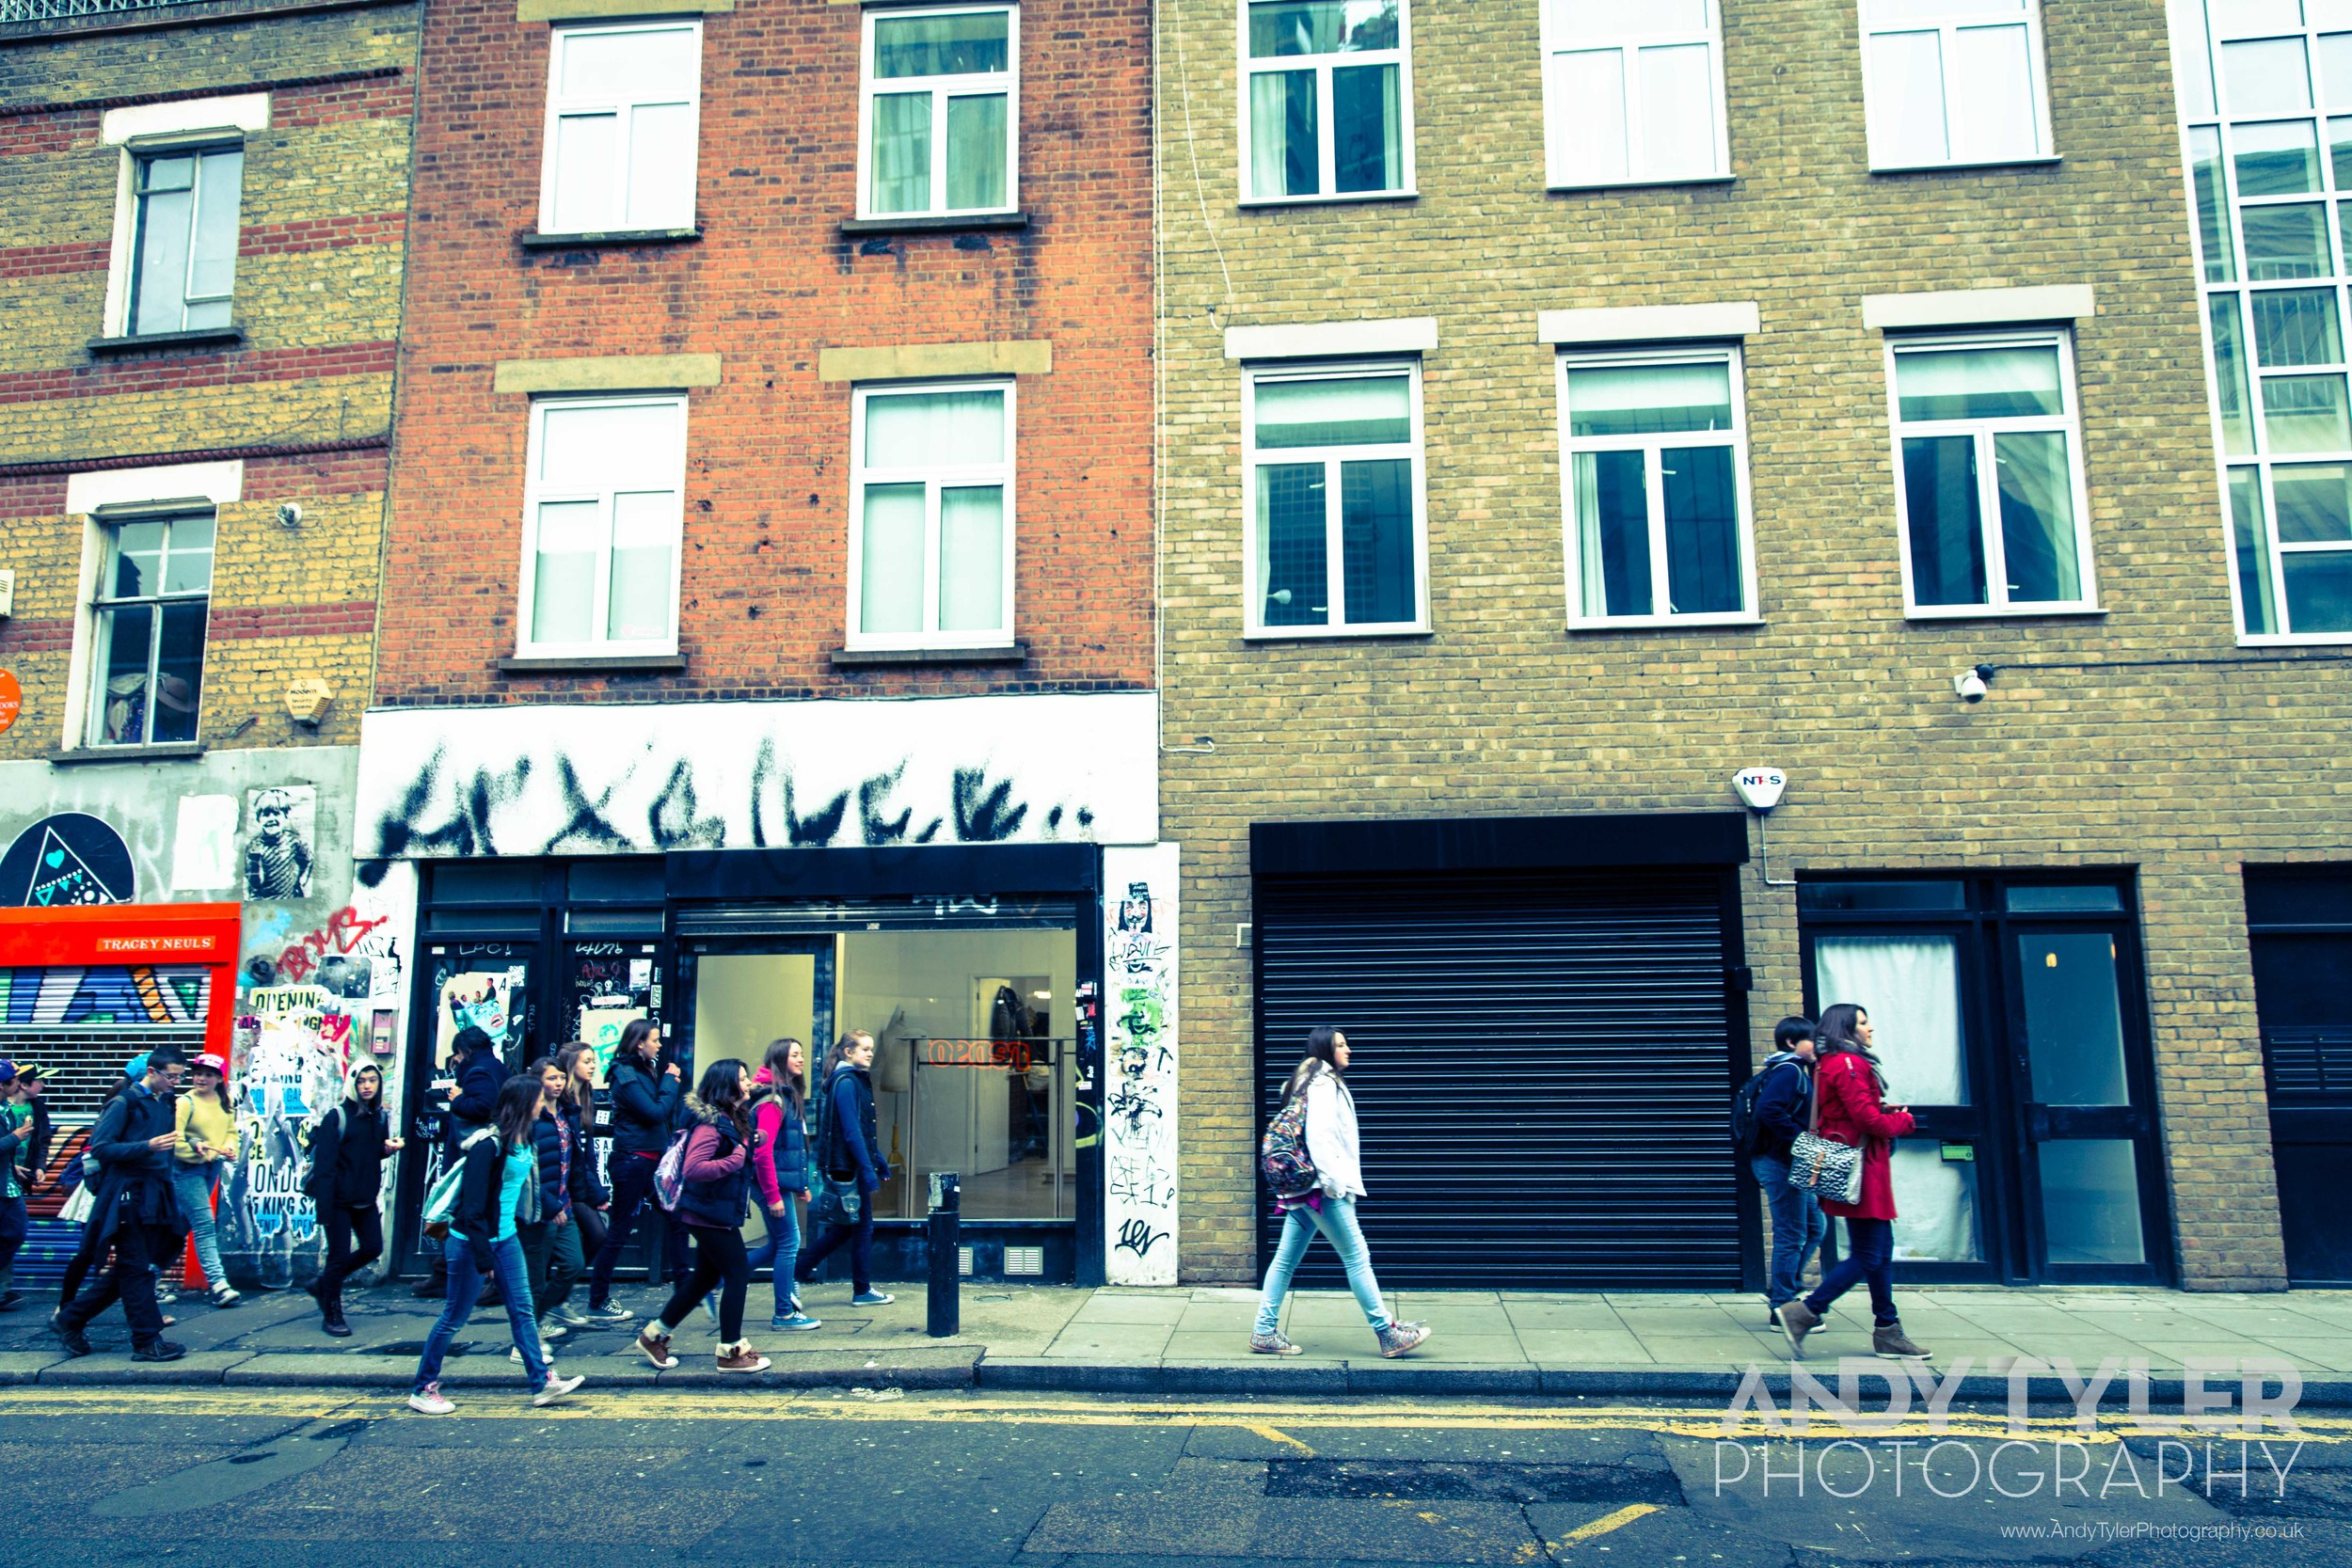 The Walk.Eat.Talk.Eat. tour gets going through the streets of East London